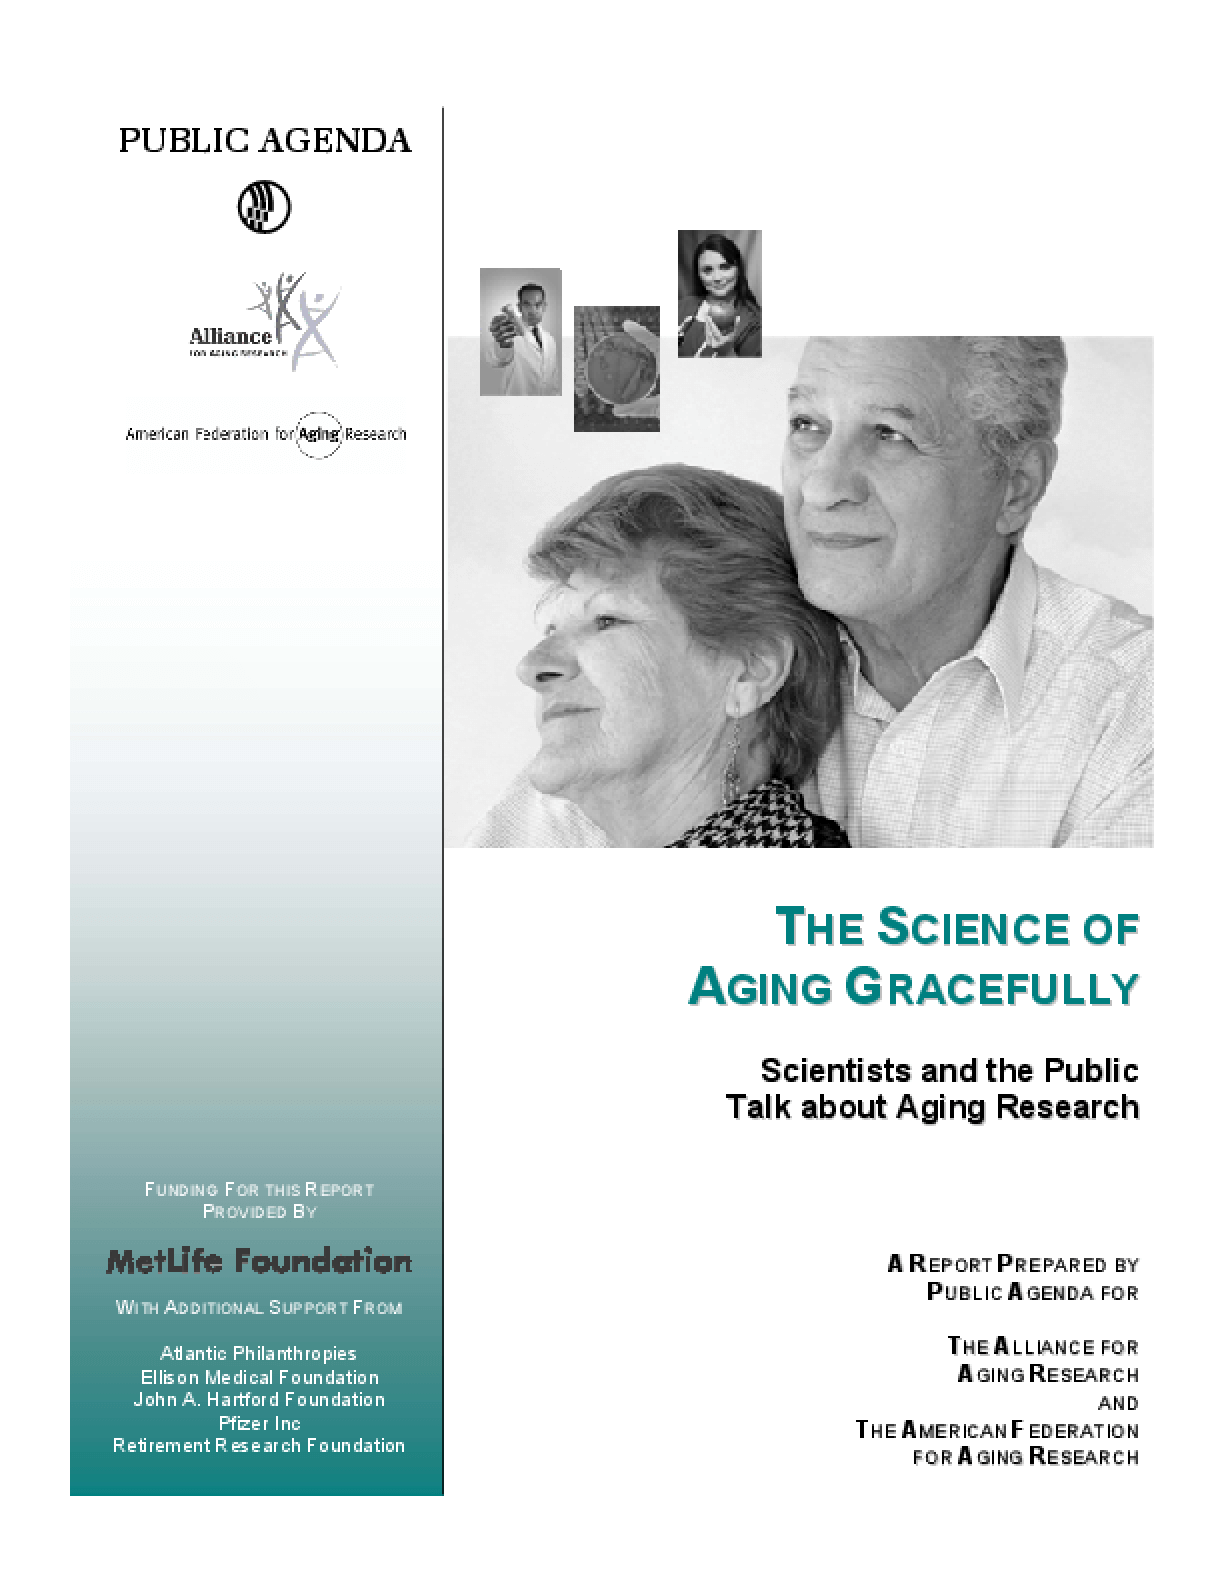 The Science of Aging Gracefully: Scientists and the Public Talk About Aging Research